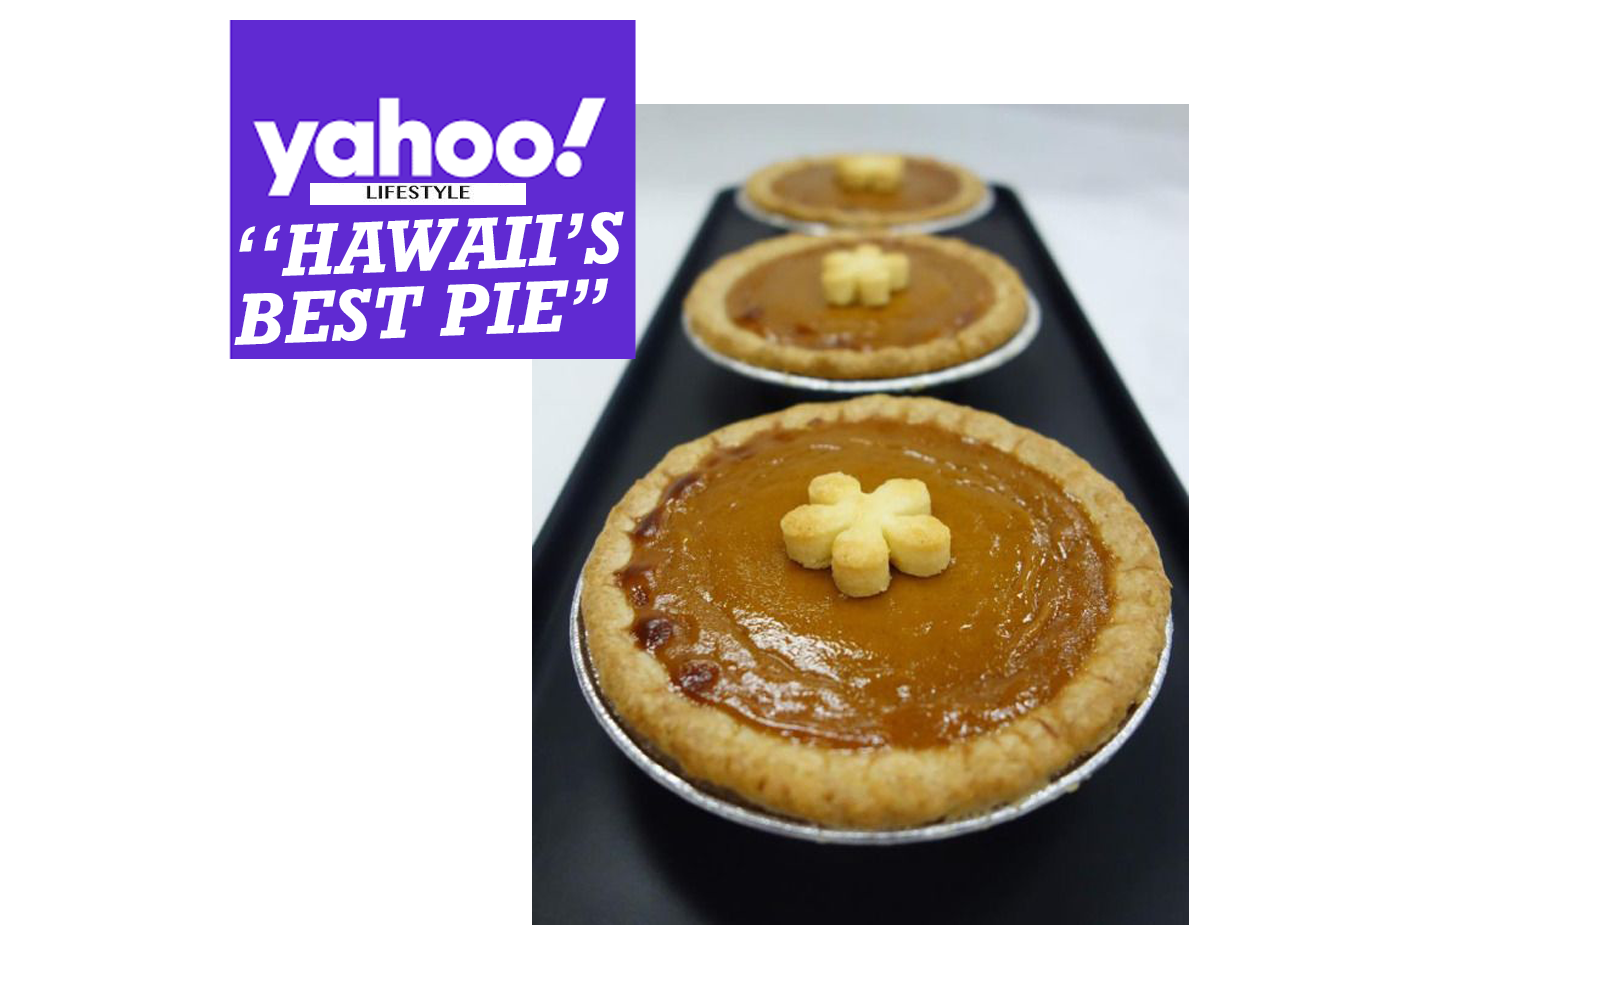 Family-owned pie shop snags title of 'Hawaii's best pie'